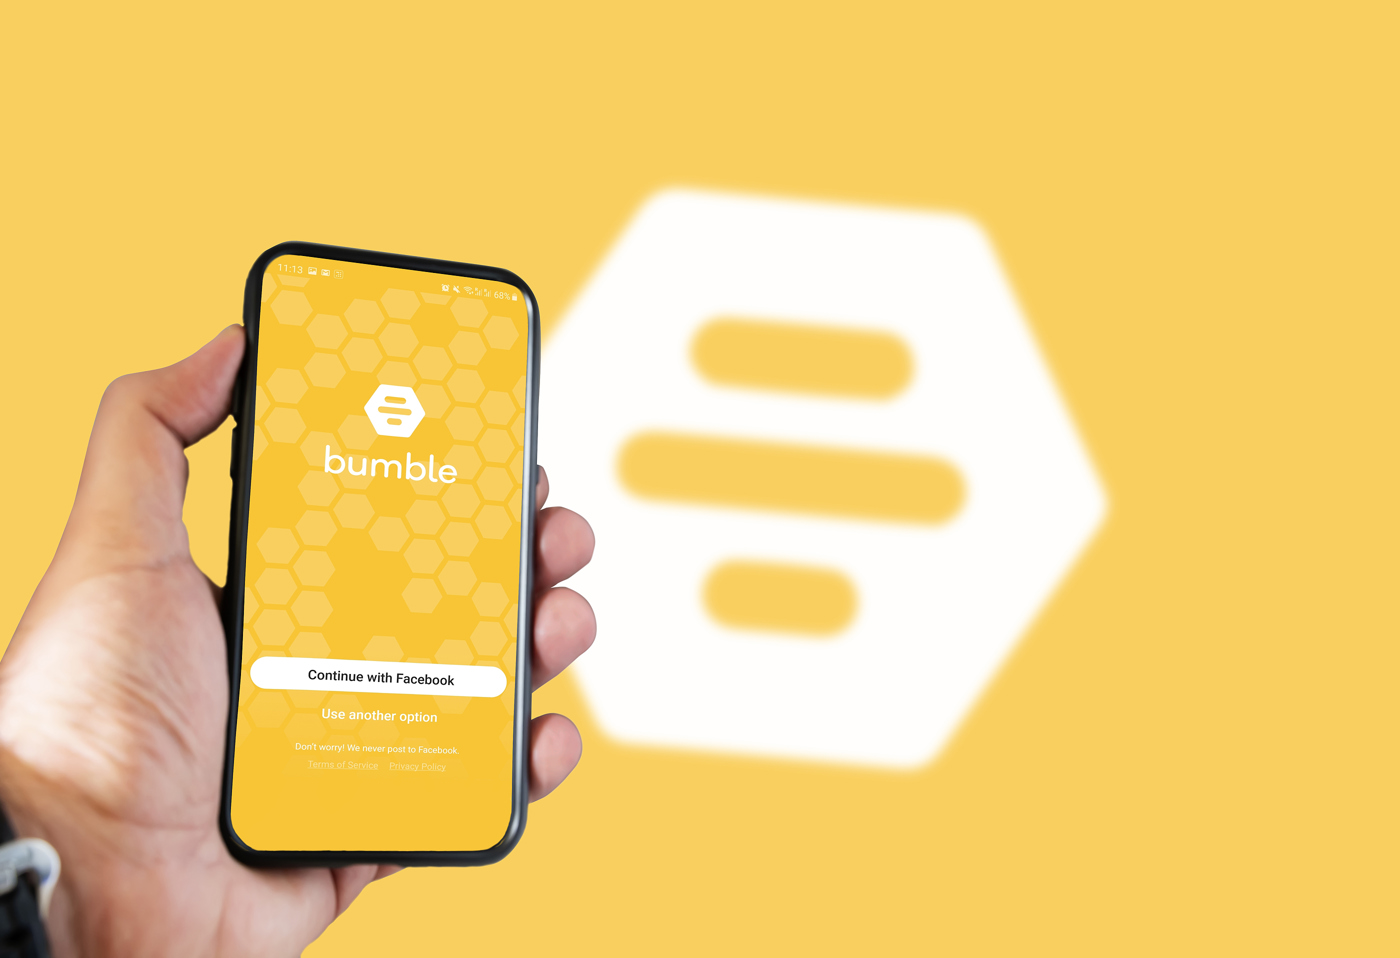 Bumble stock, BMBL stock, online dating stocks